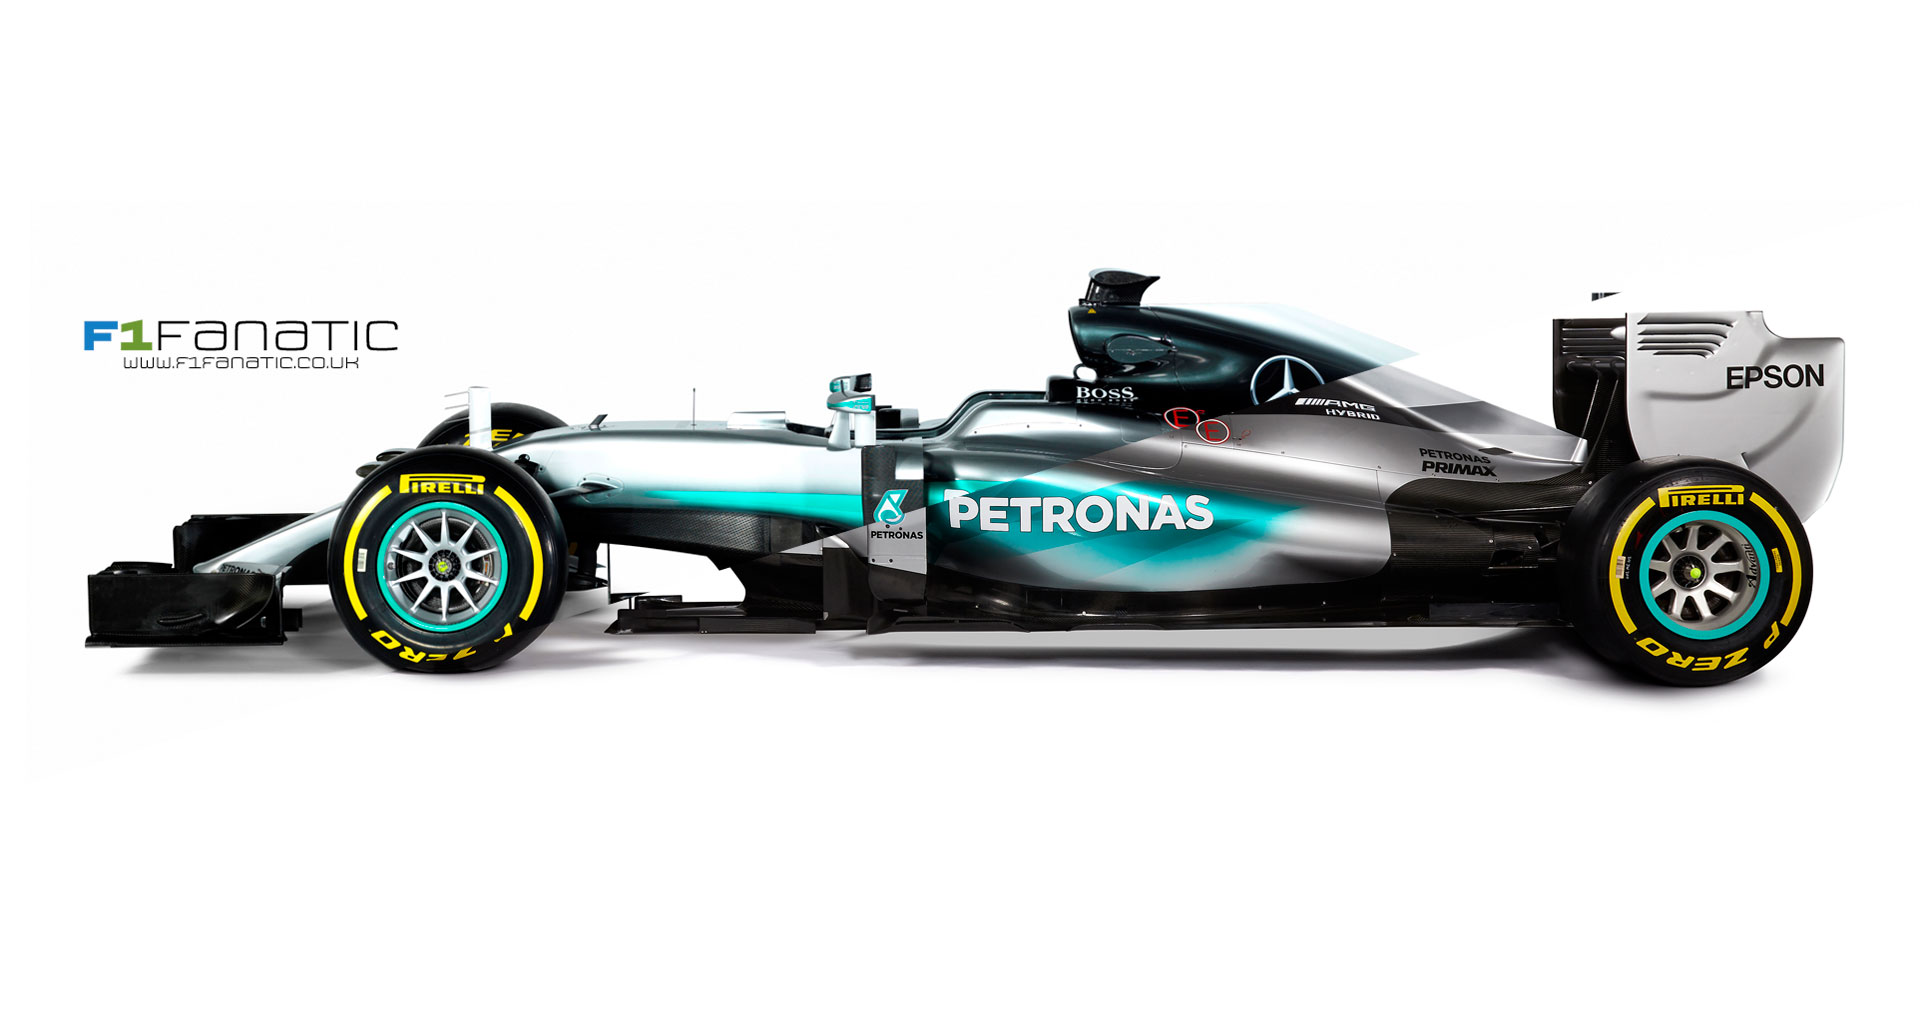 compare mercedes 39 new w07 with their 2015 car f1 fanatic. Black Bedroom Furniture Sets. Home Design Ideas